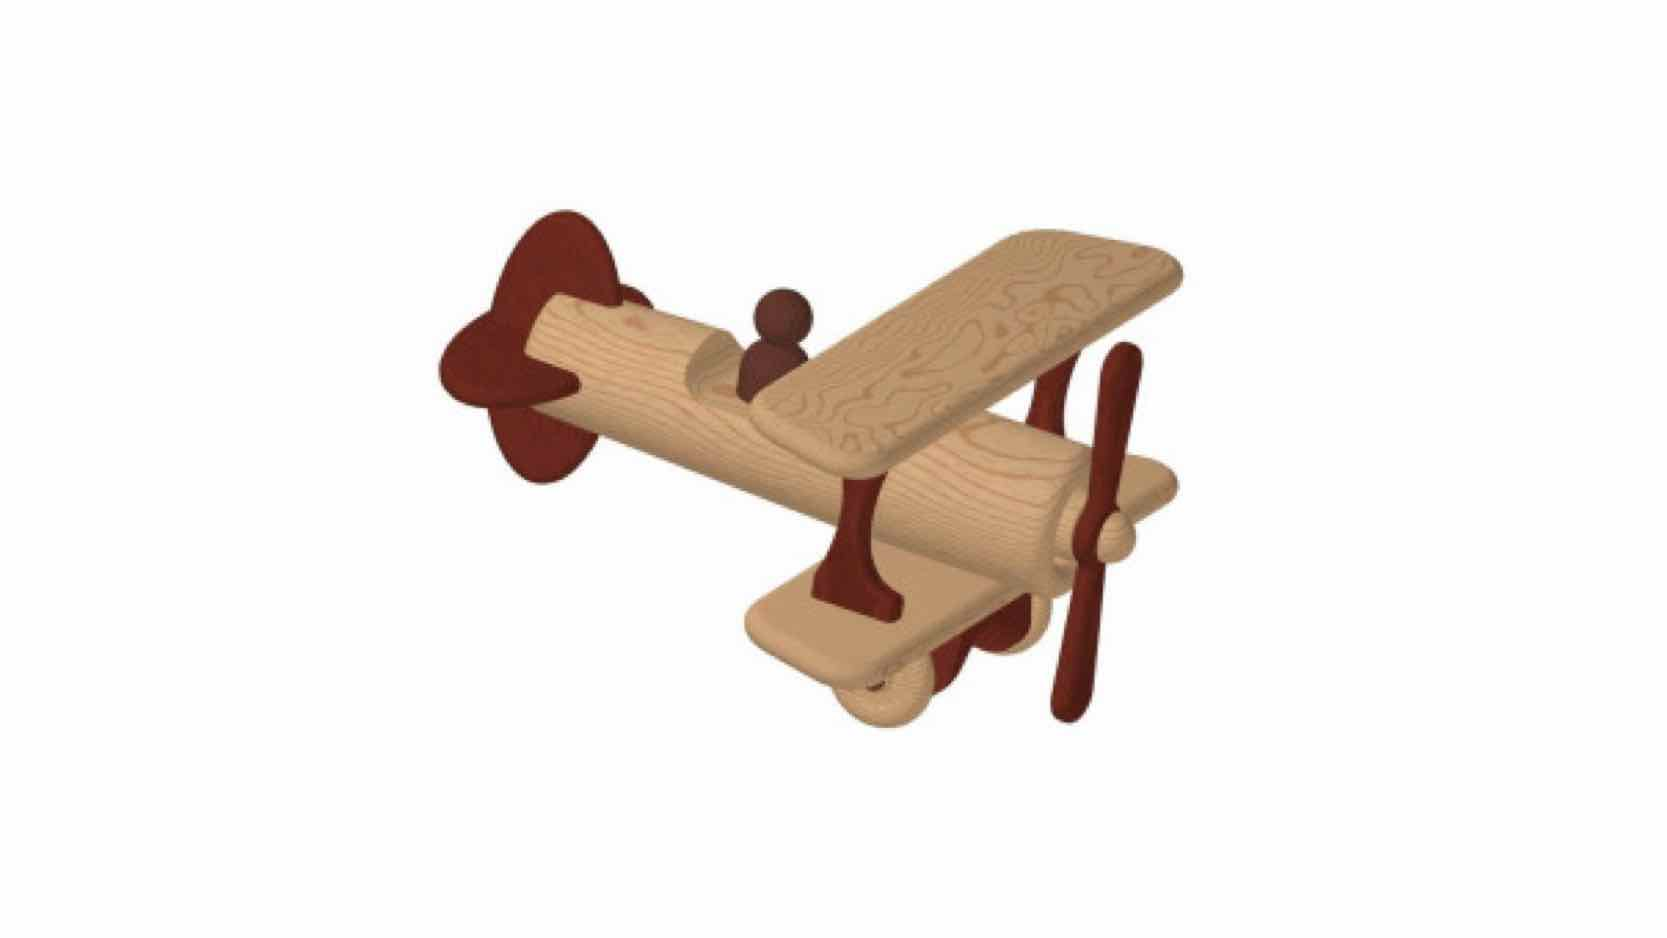 biplanes,airplanes,toys,games,childrens,wooden,free woodworking plans,projects,do it yourself,woodworkers